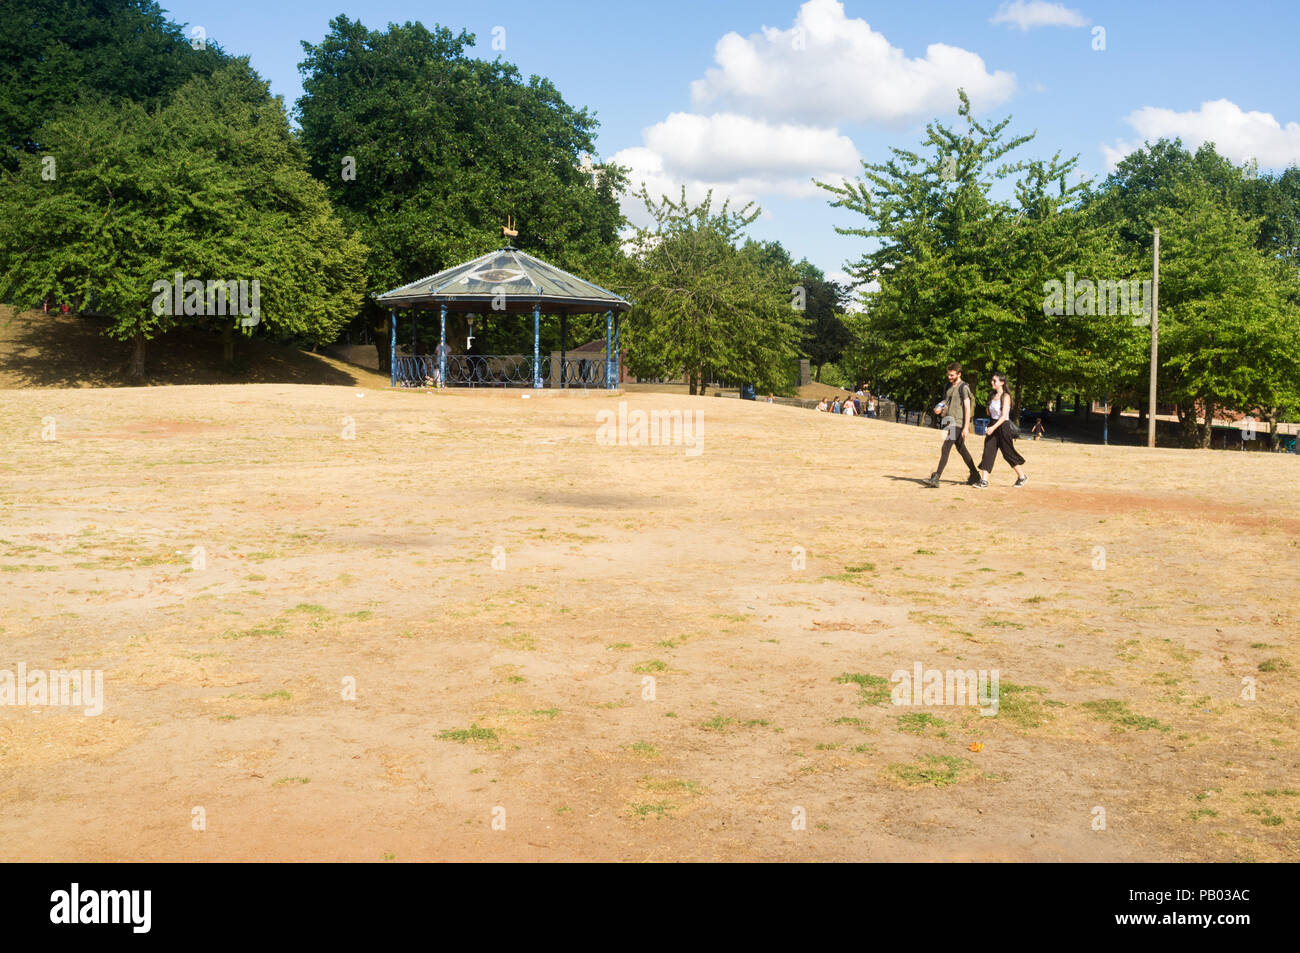 Dry grass in a park in Bristol city, UK, during the 2018 summer heatwave - Stock Image